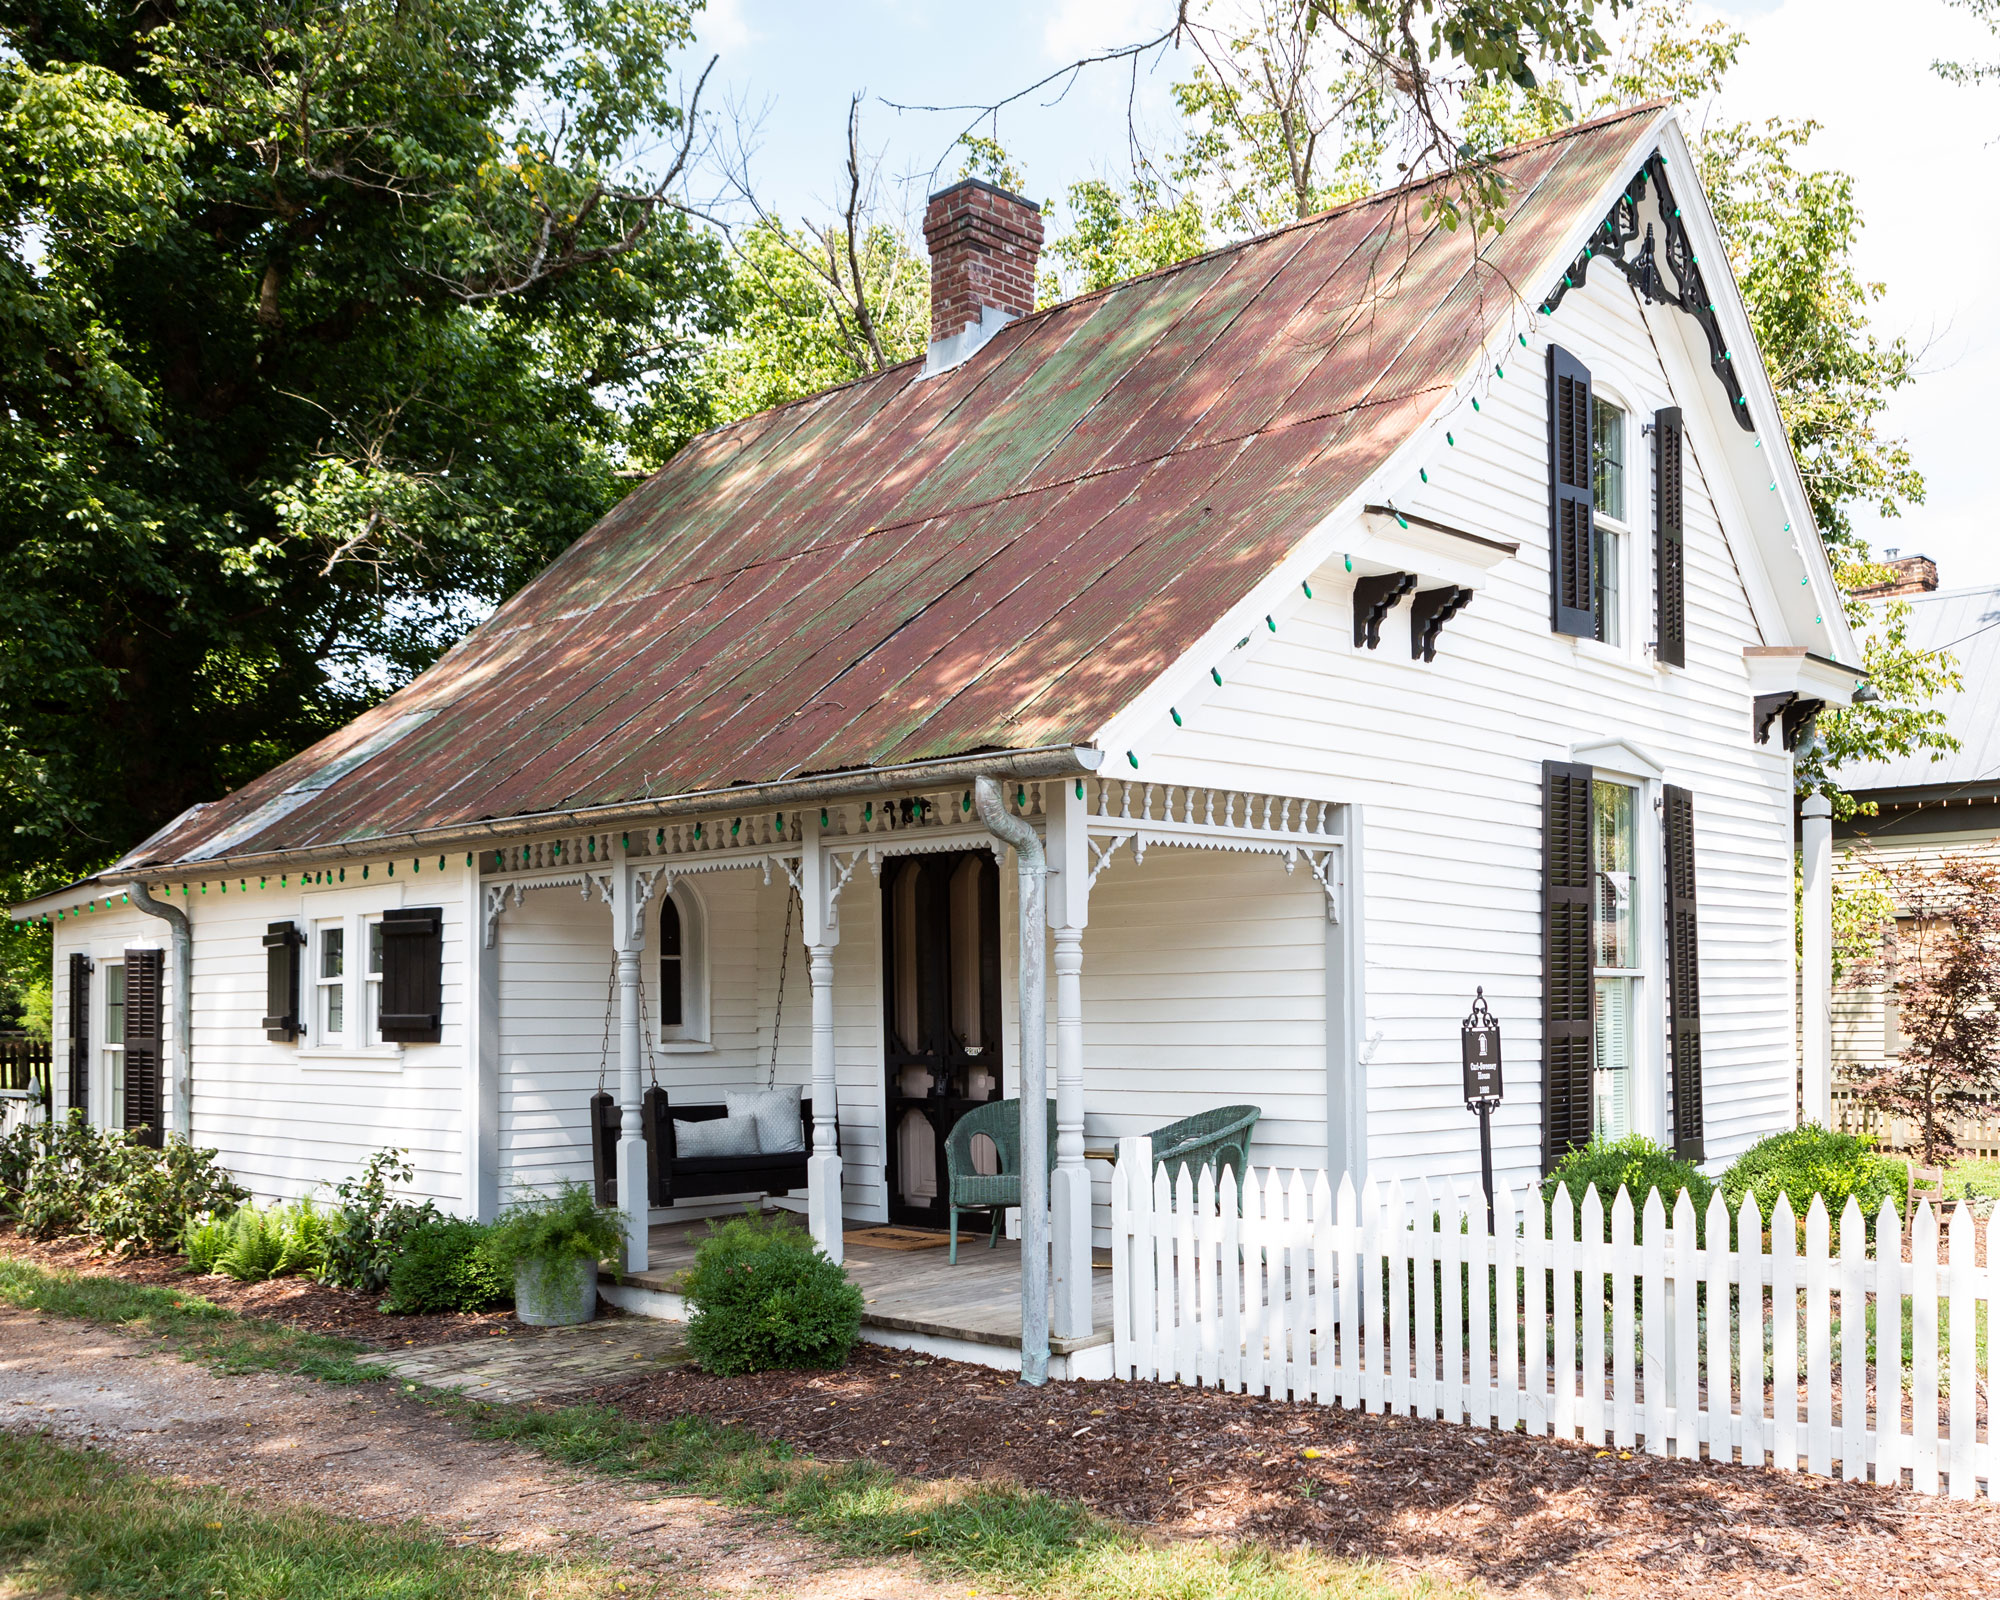 """Holly's tin-roofed Victorian cottage in Leiper's Fork, Tennessee, built in the early 1890s for Carl Sweeney and his family, is only about 1,200 square feet. """"So it's too small to be a home for me, my husband, and three kids,"""" she says. """"But it's a dreamy weekend escape."""""""